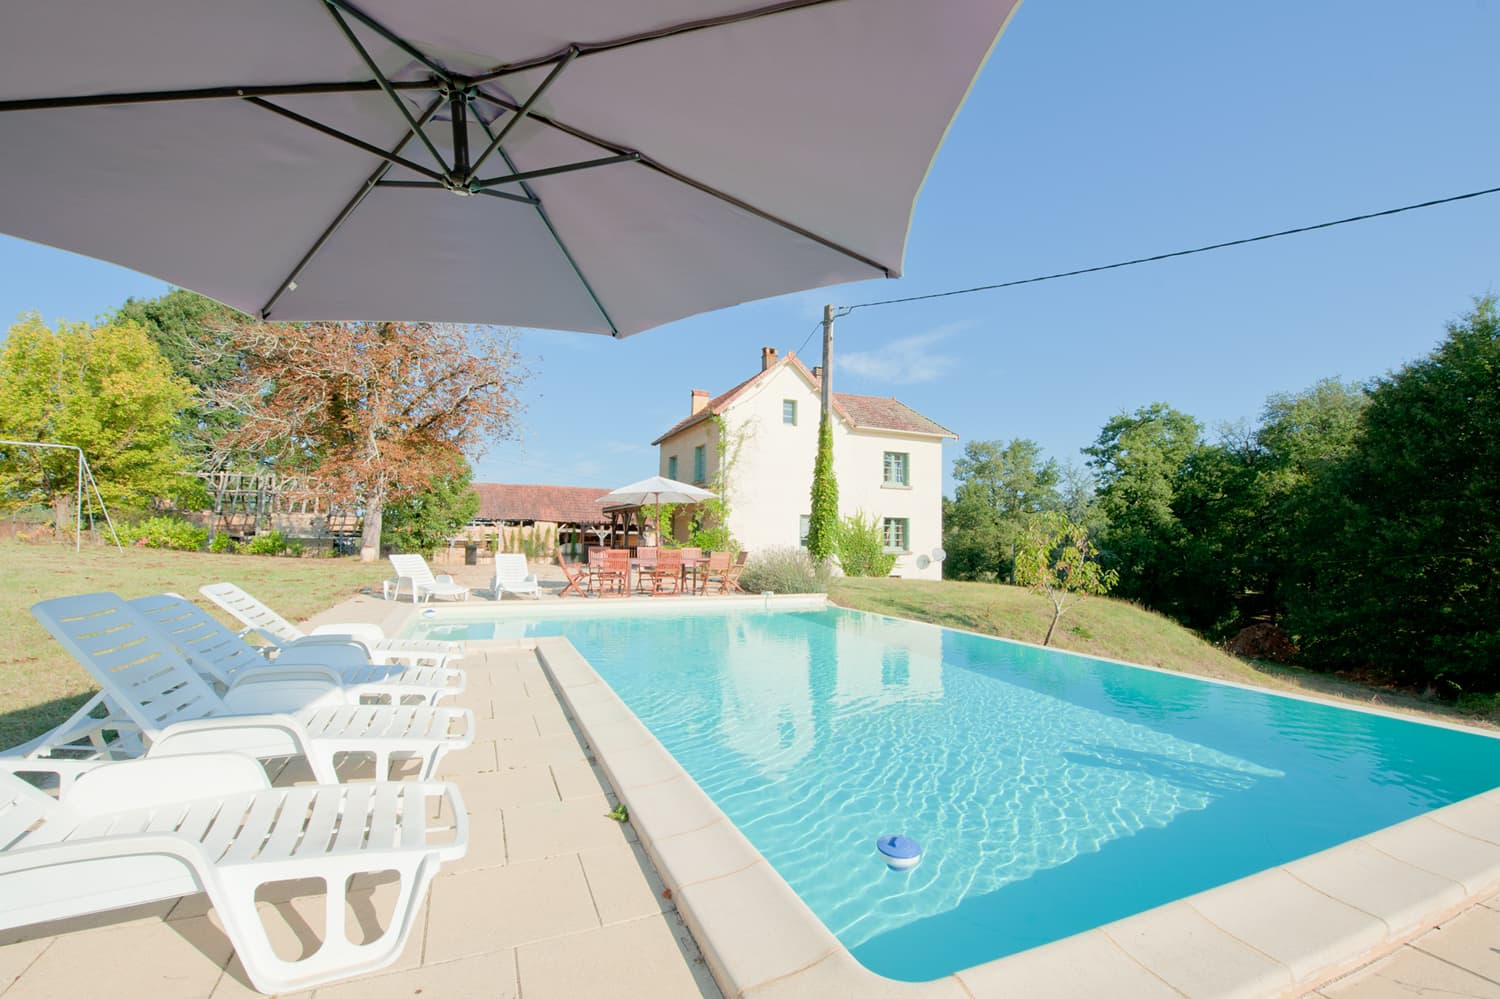 Holiday accommodation in Dordogne with private pool